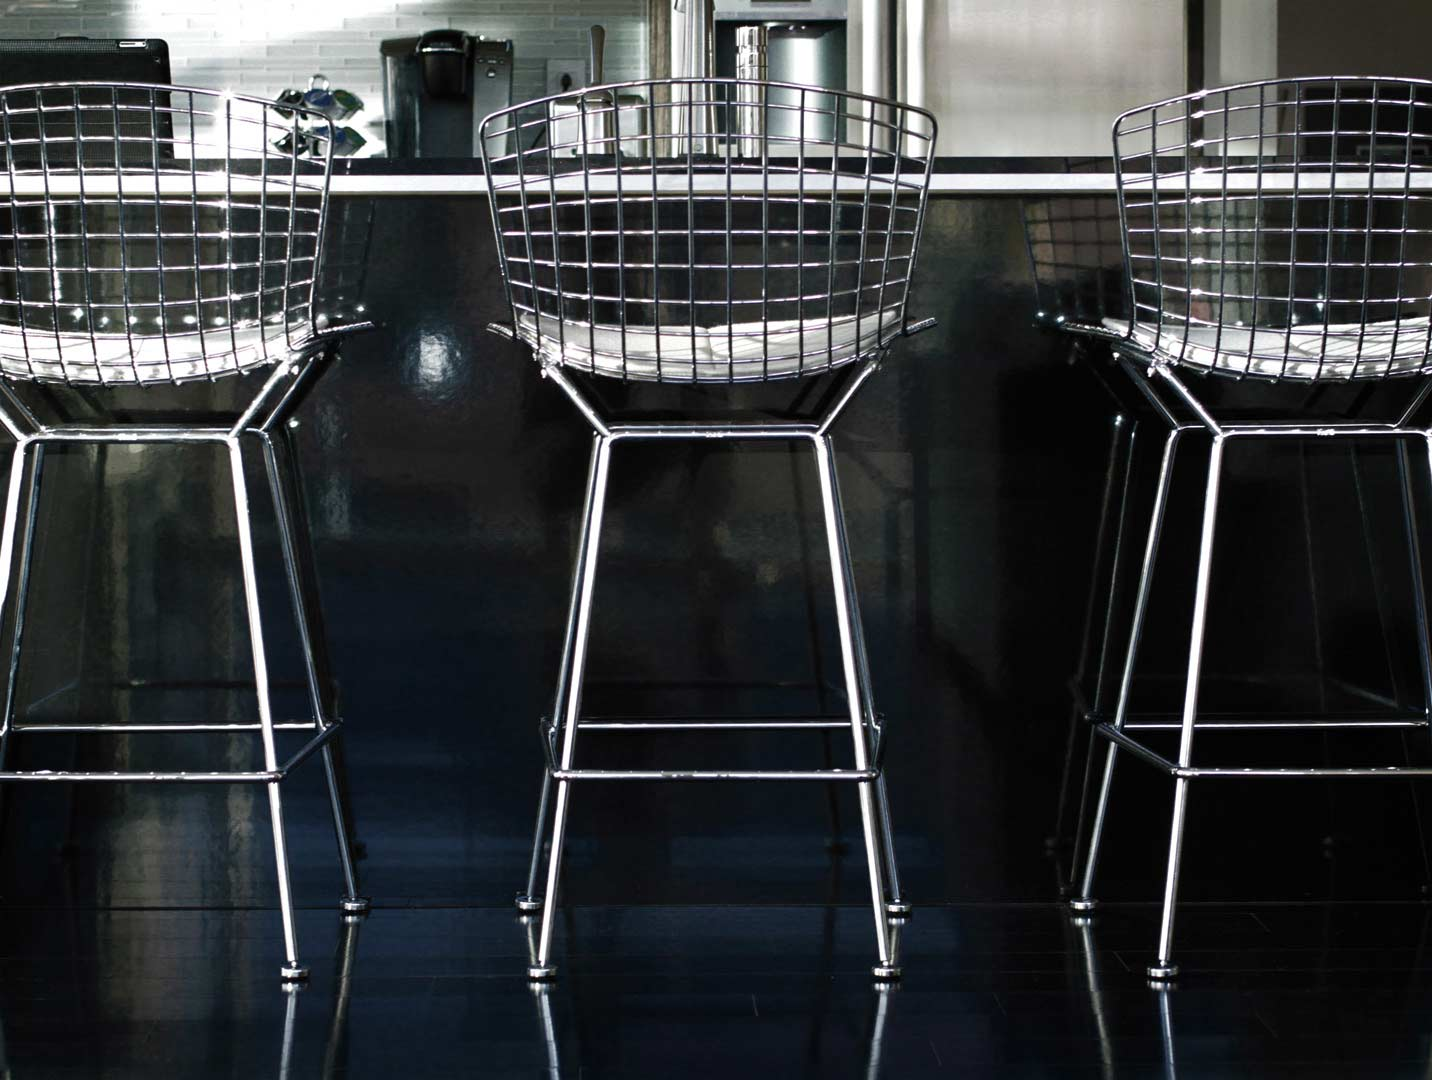 Urban Industrial Interior - Bertoia Chairs at Bar - HAUS Architecture, WERK Building Modern